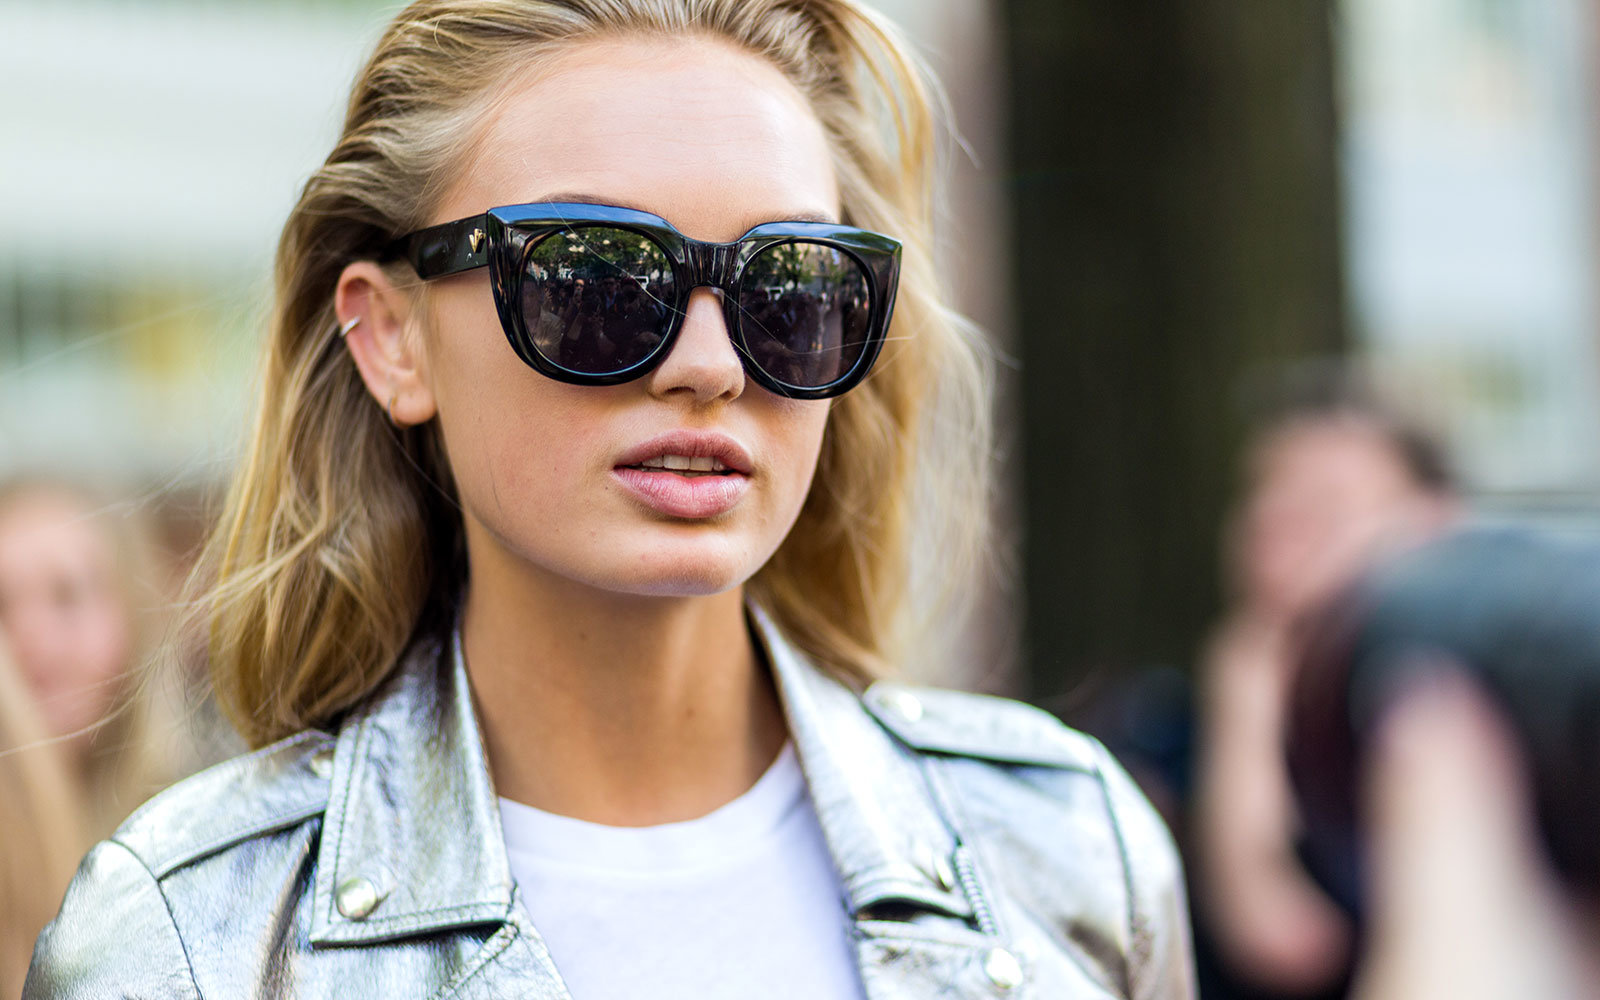 How to Care for Your Sunglasses